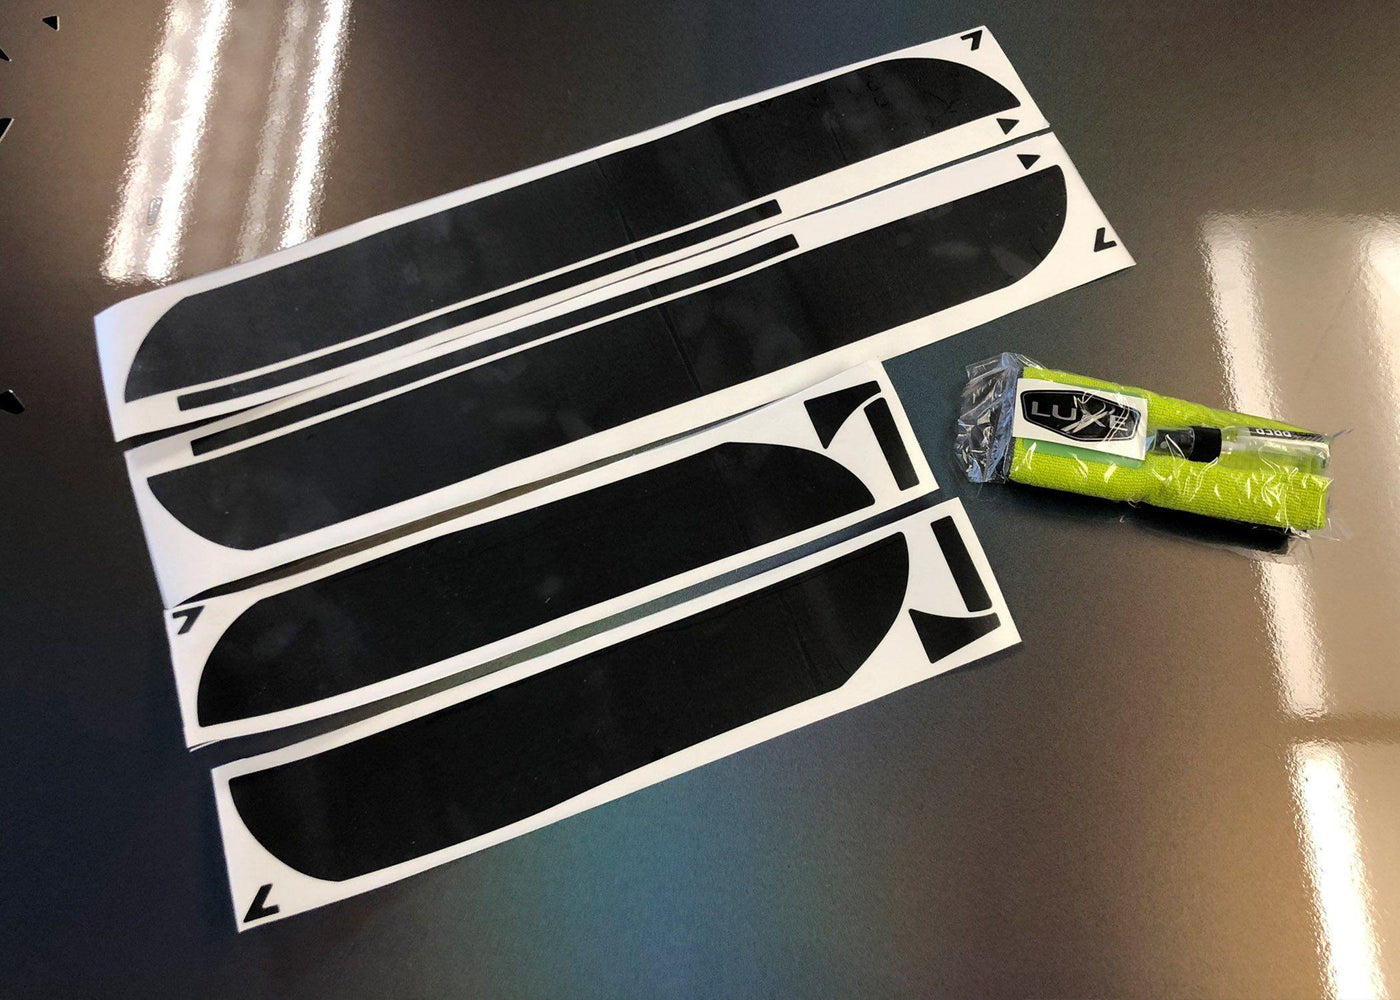 2011+ Charger Door Sill Decal Kit - Solid Layer Only